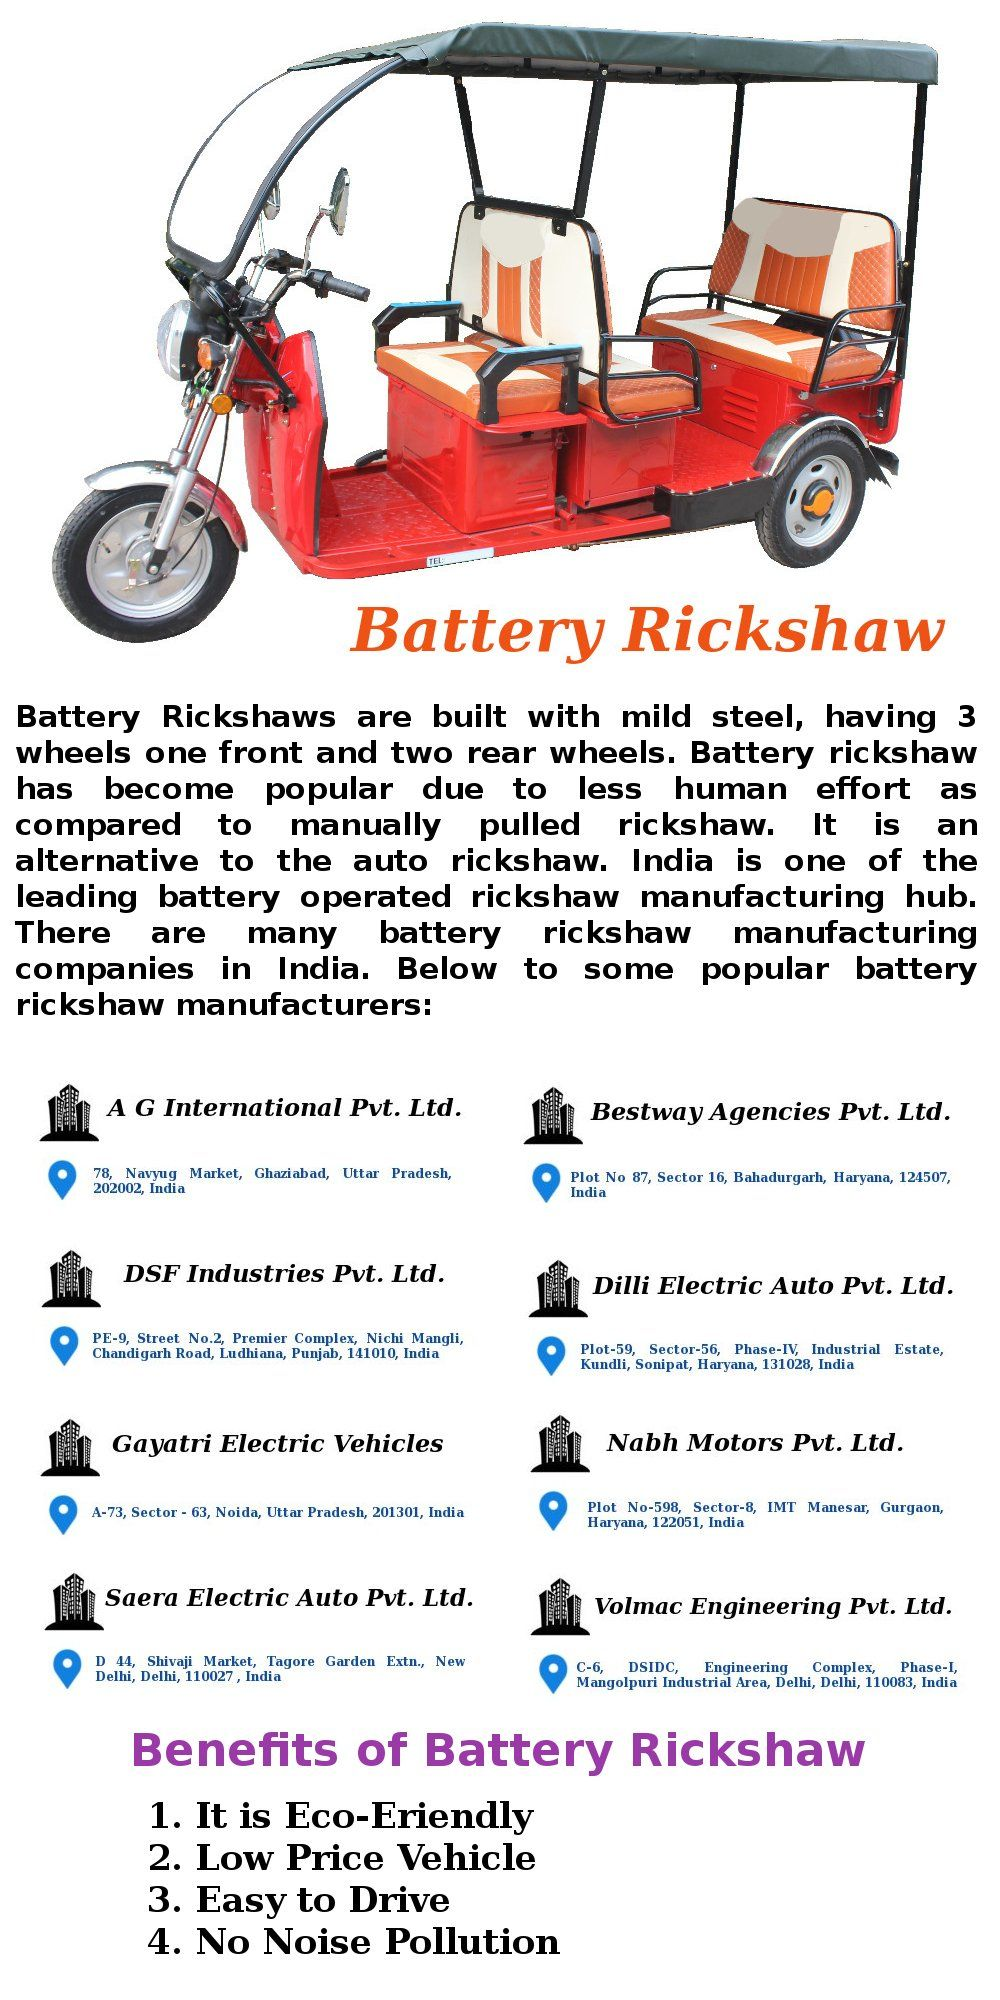 Battery Rickshaw Manufacturing Companies in India